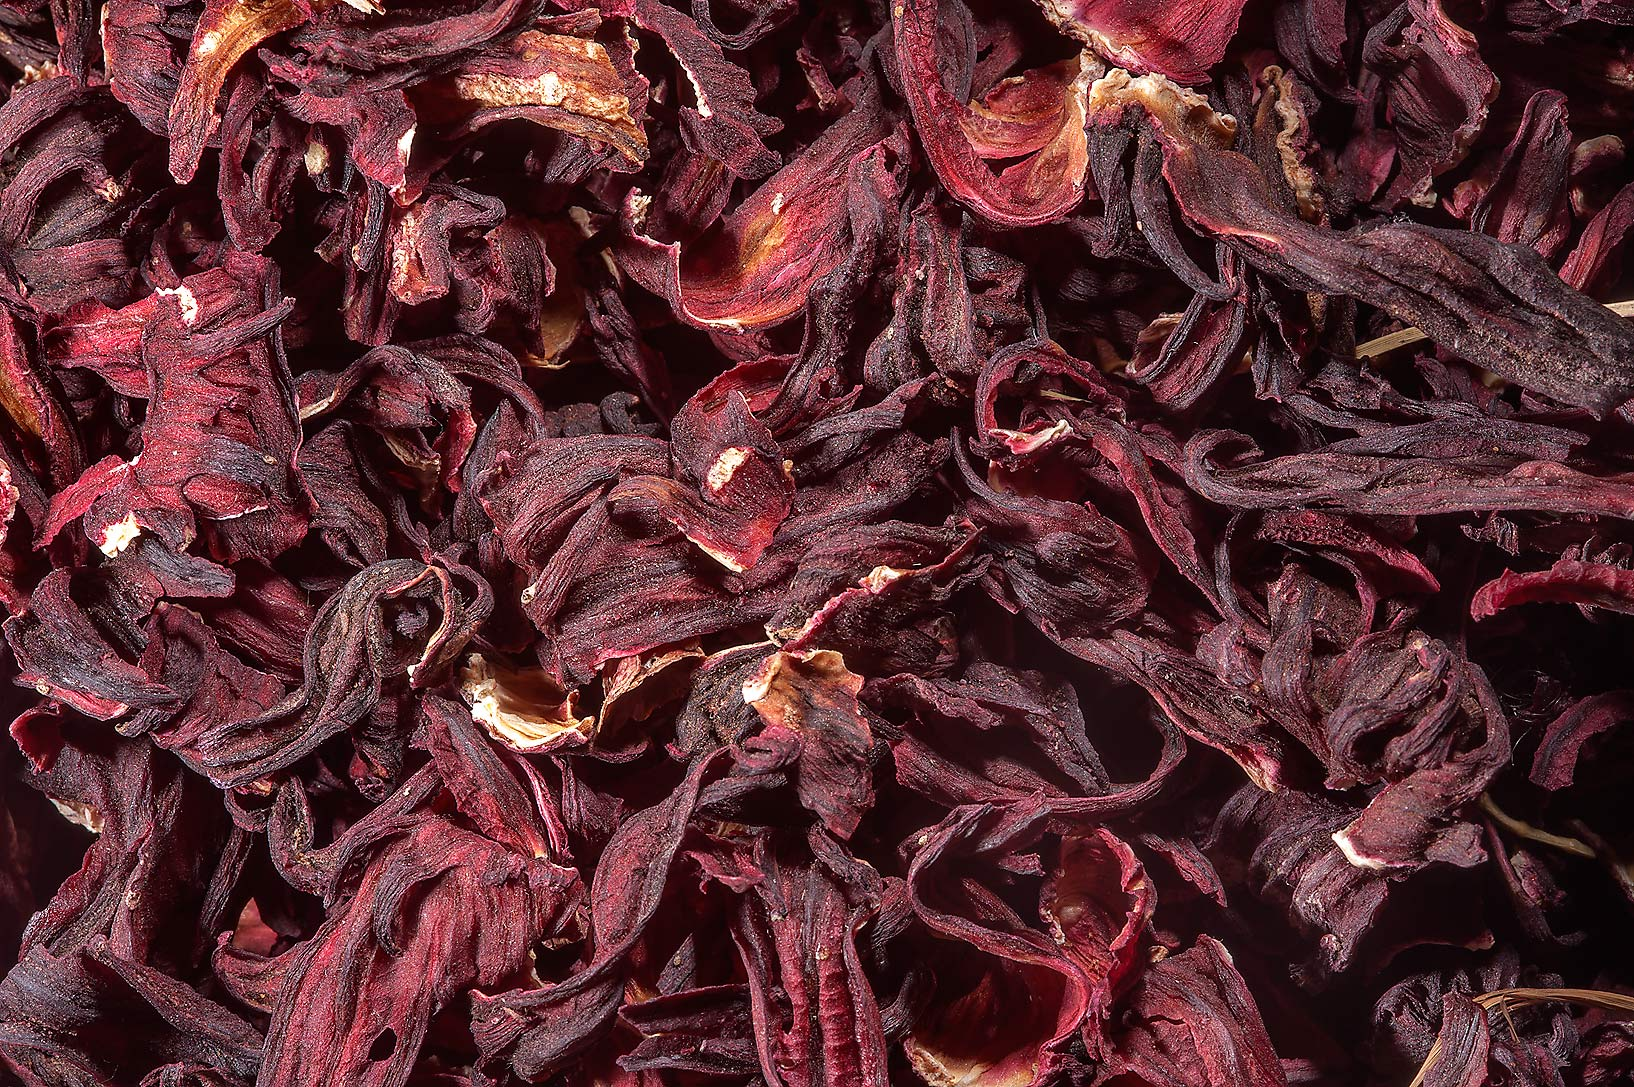 Dried hibiscus flowers in spice section in Souq Waqif (Old Market). Doha, Qatar